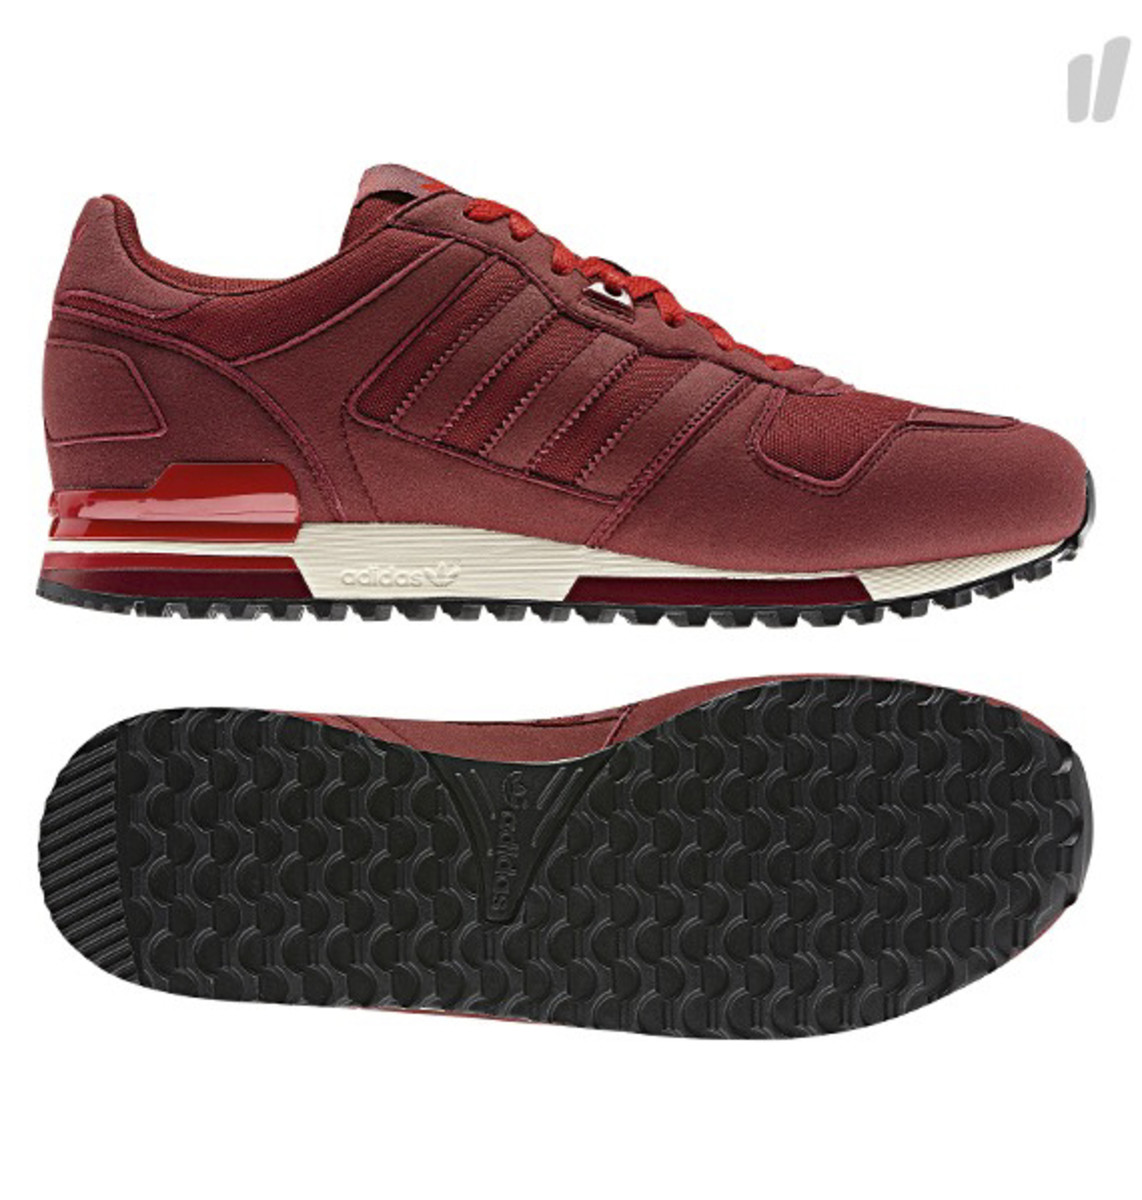 adidas-originals-fall-winter-footwear-collection-preview-06